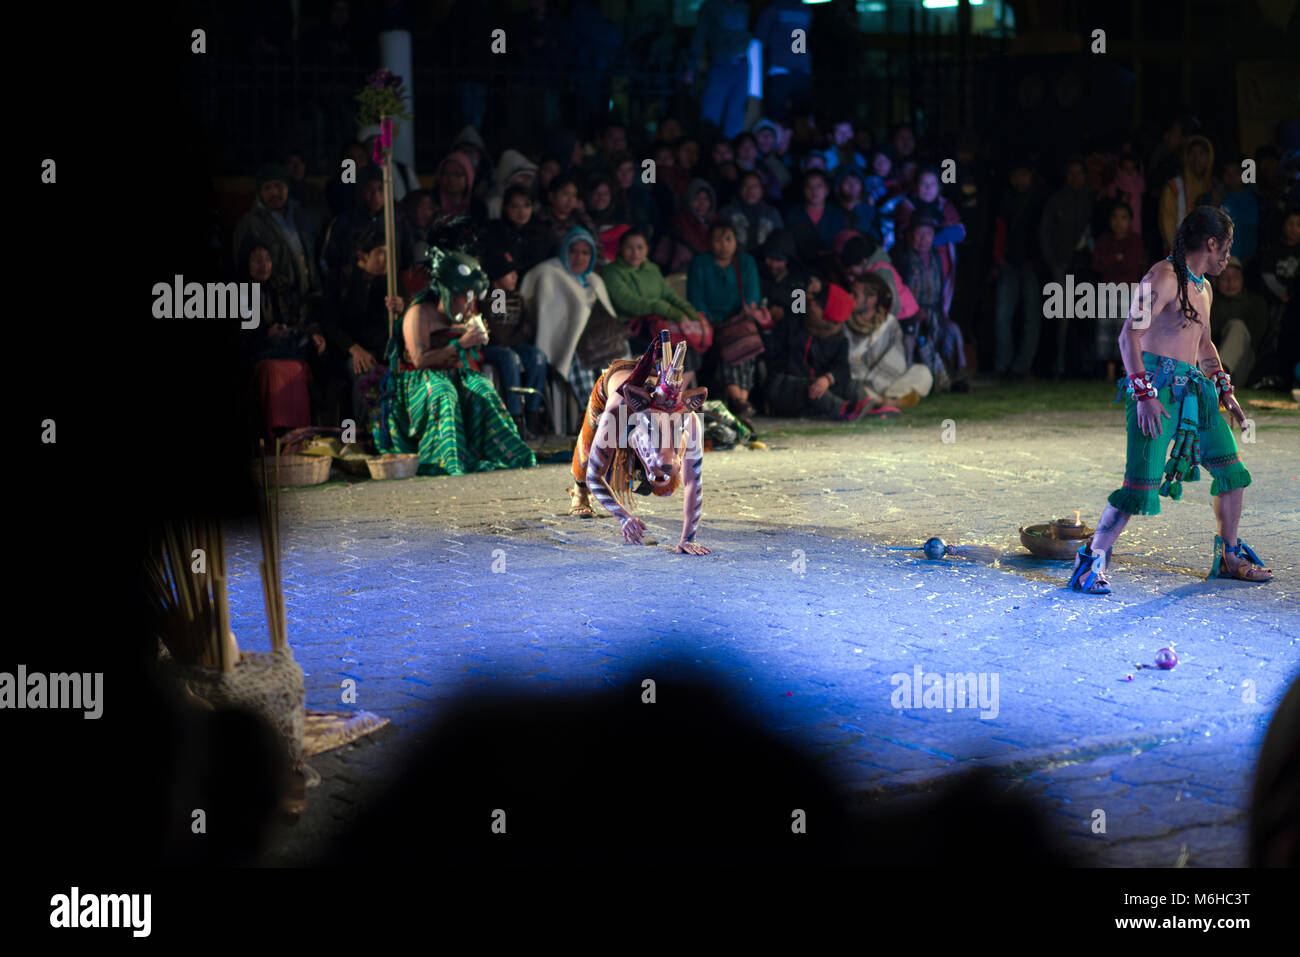 A re-enactment of an ancient Mayan ritual at the Rukux festival in Sololá, Guatemala. - Stock Image